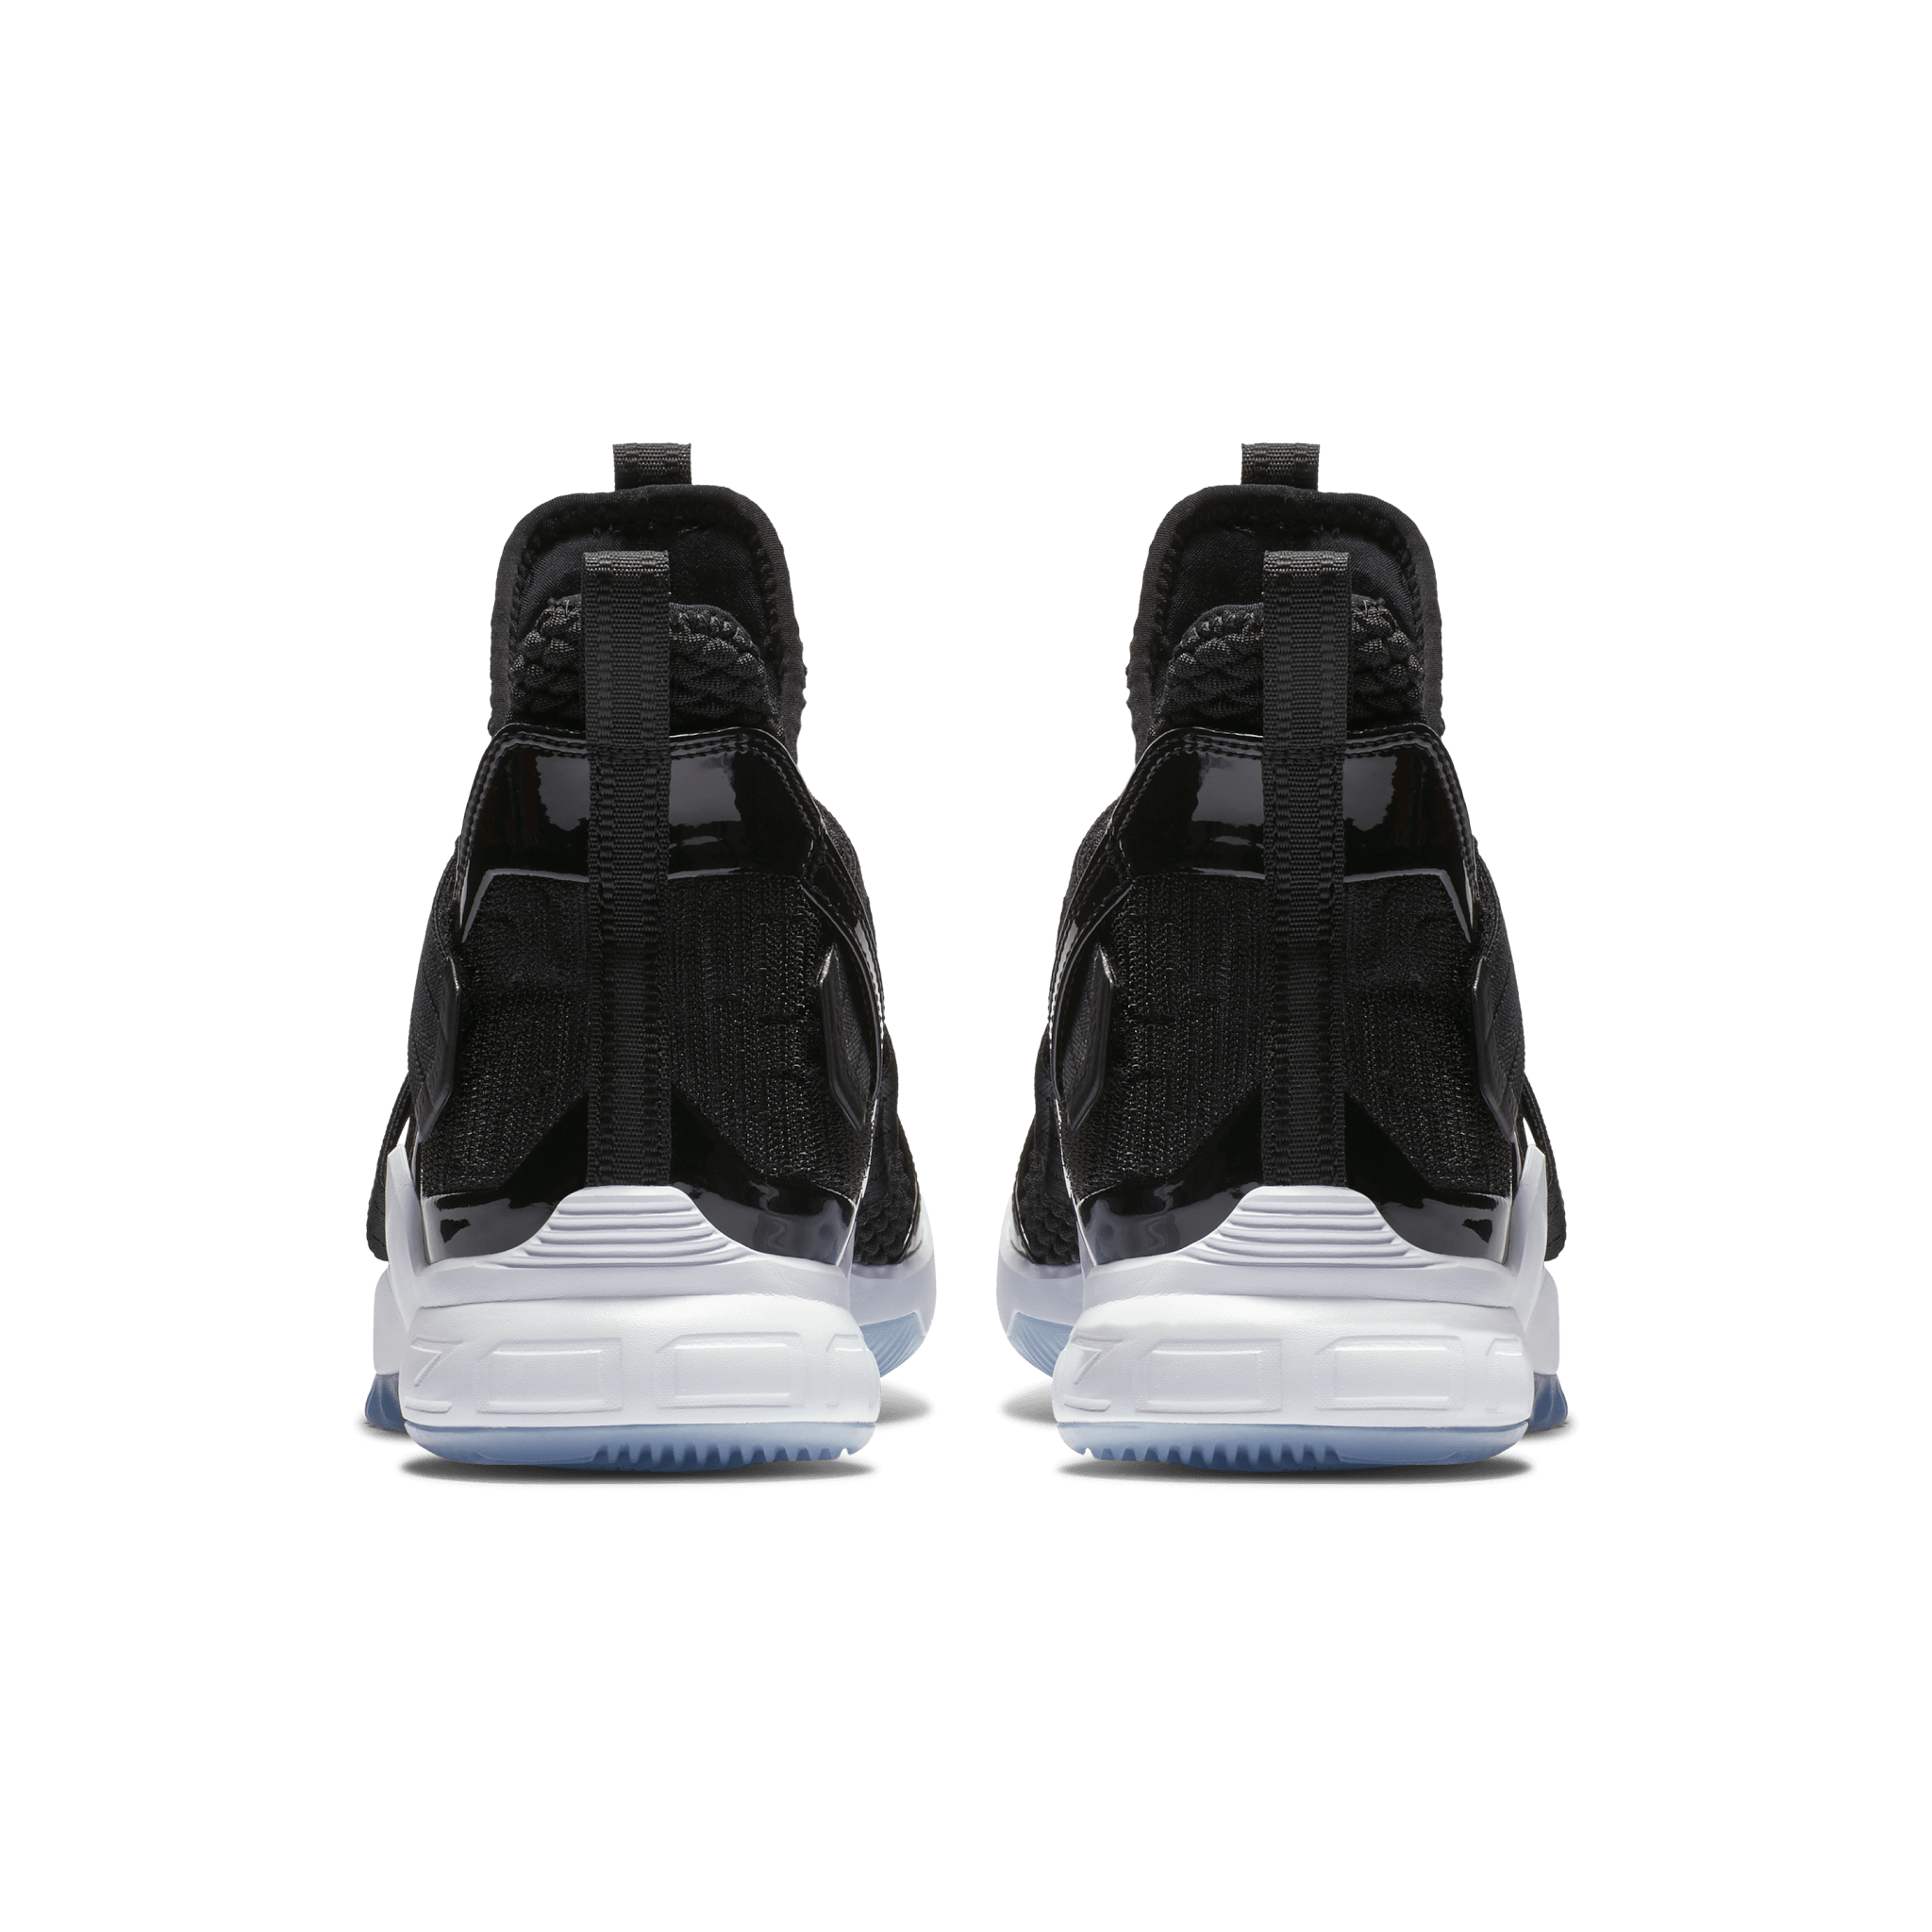 633c93dd7c5b55 Nike Lebron Soldier 12 Performance Review